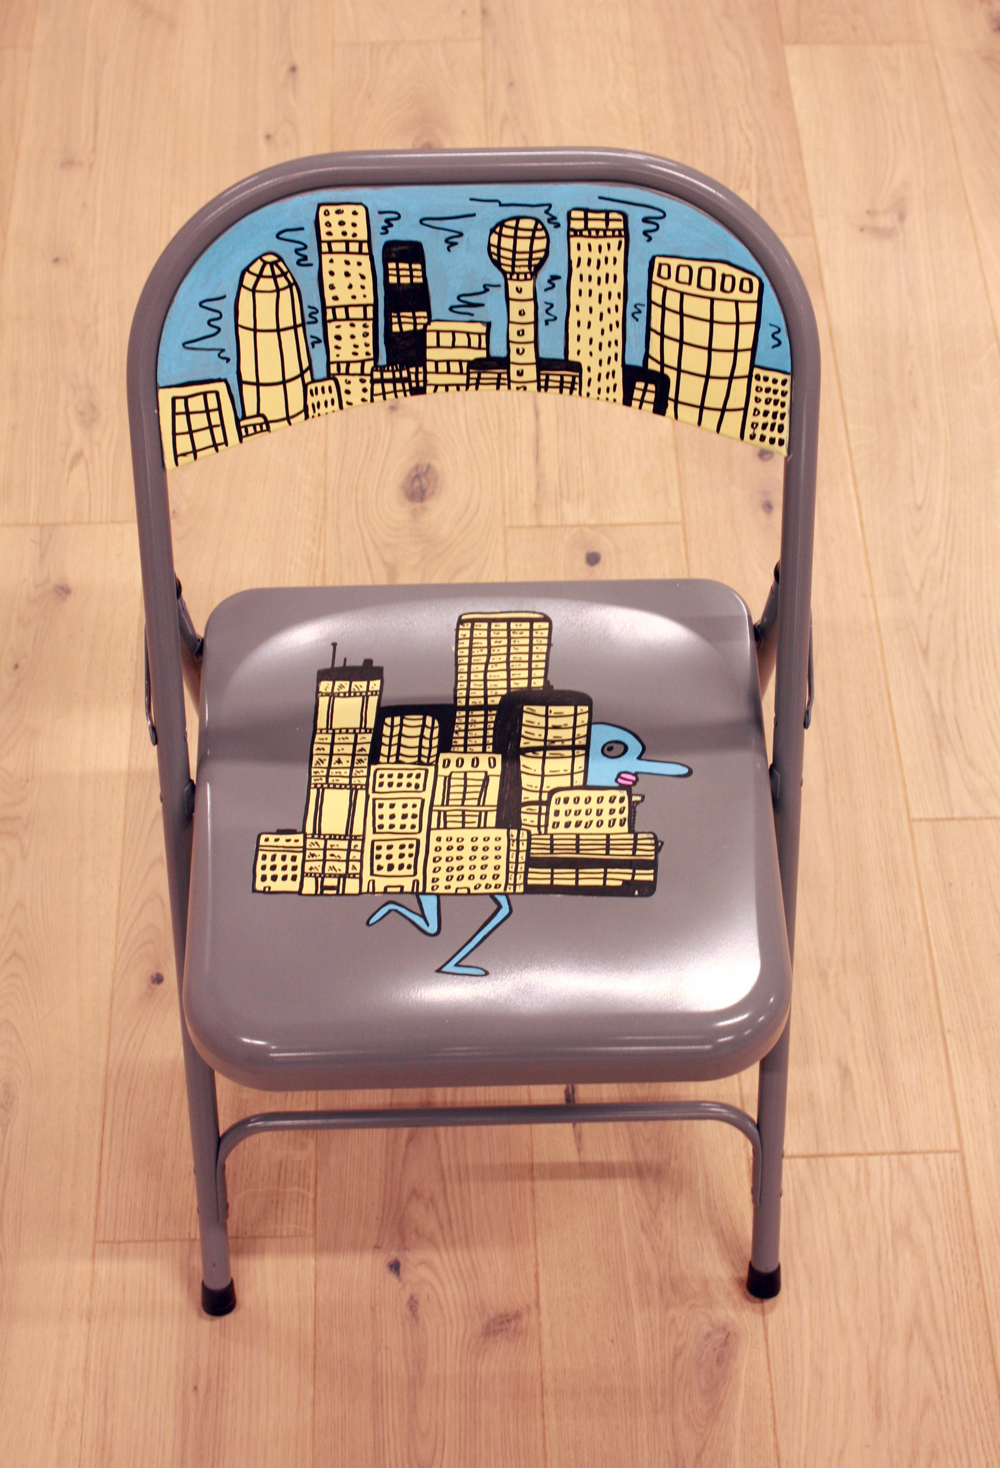 chair doodle, doodles, painting on objects, city